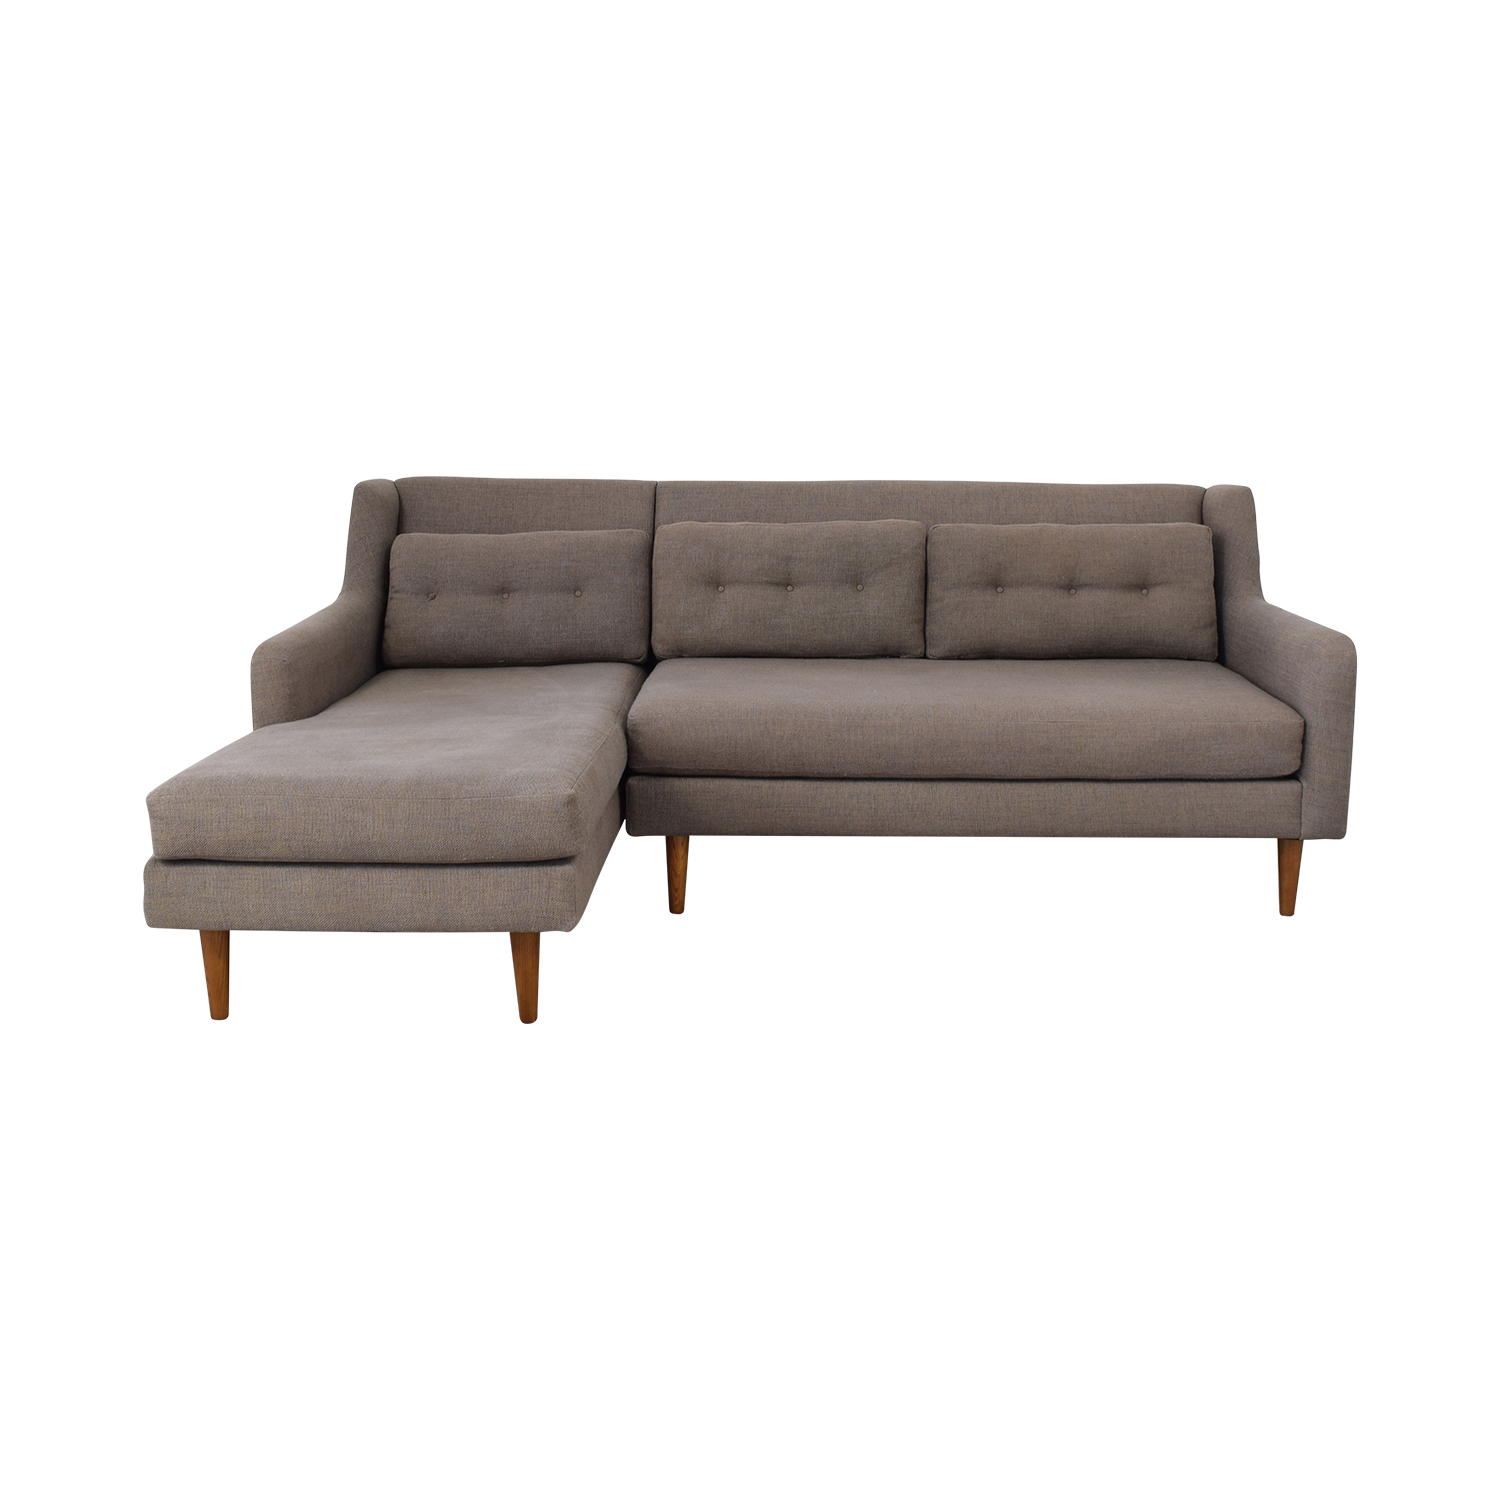 West Elm West Elm Crosby Mid Century Chaise Sectional used